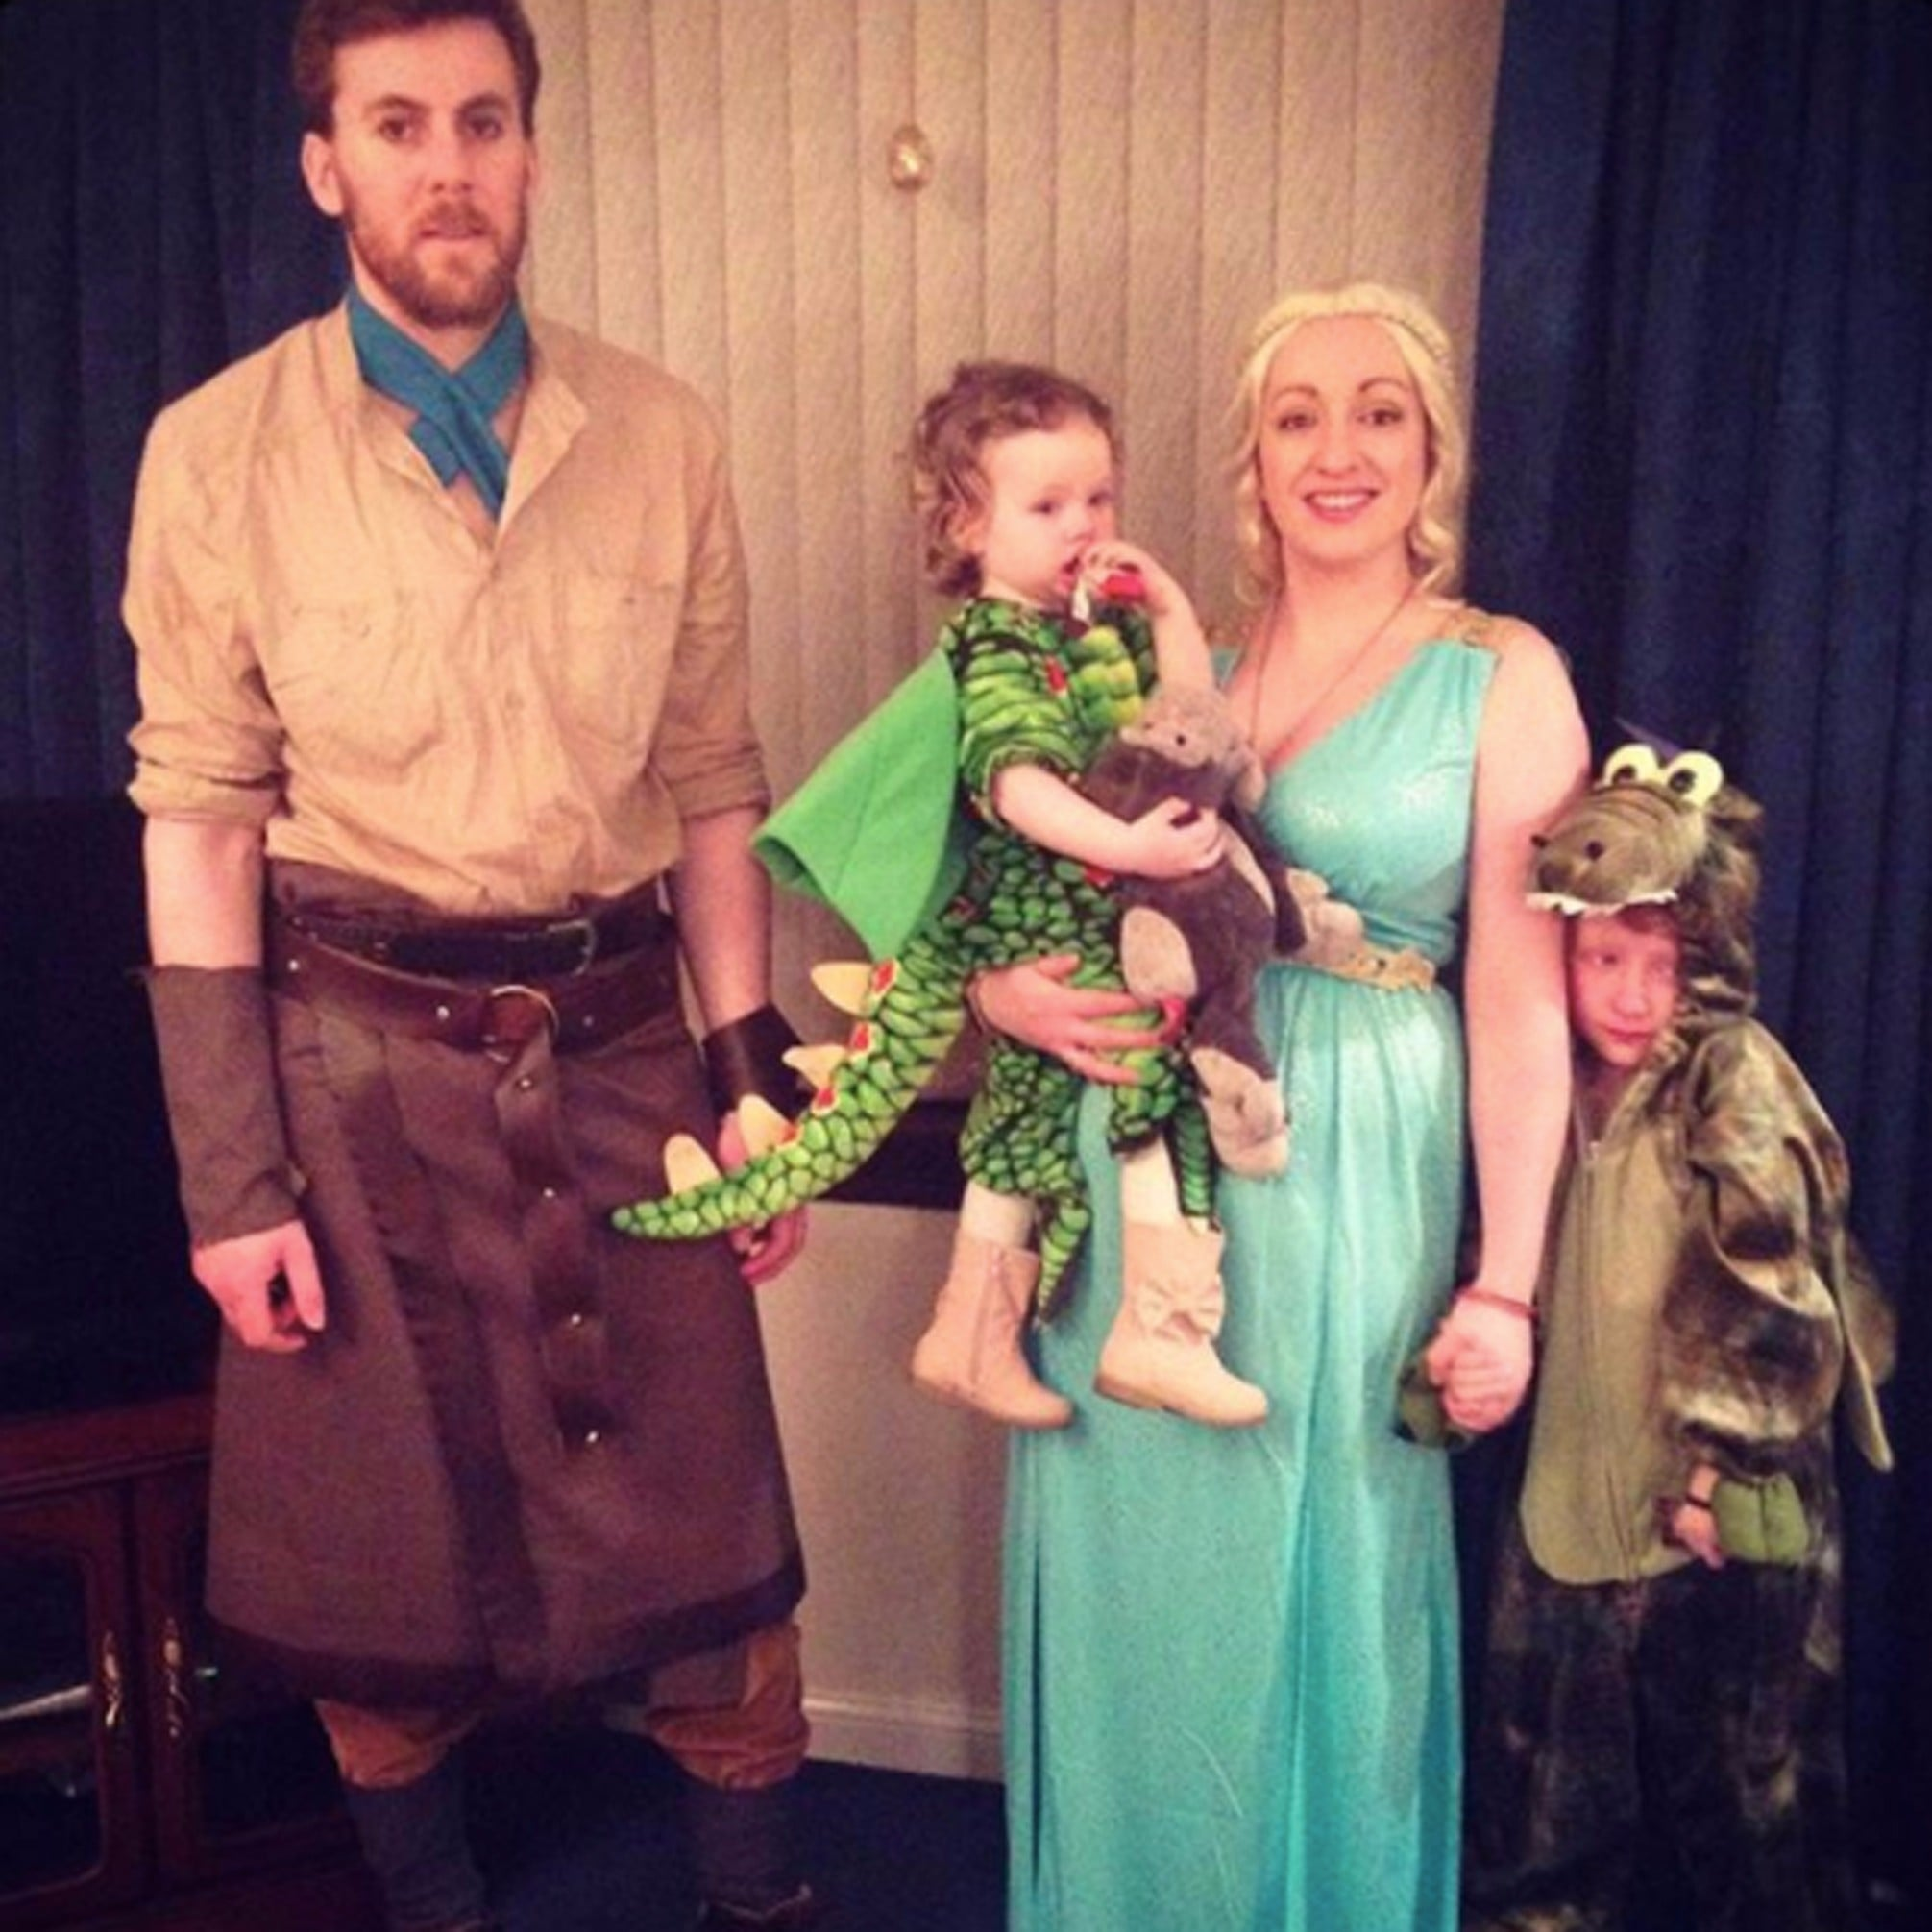 Halloween Costume Ideas For the Family | POPSUGAR Moms